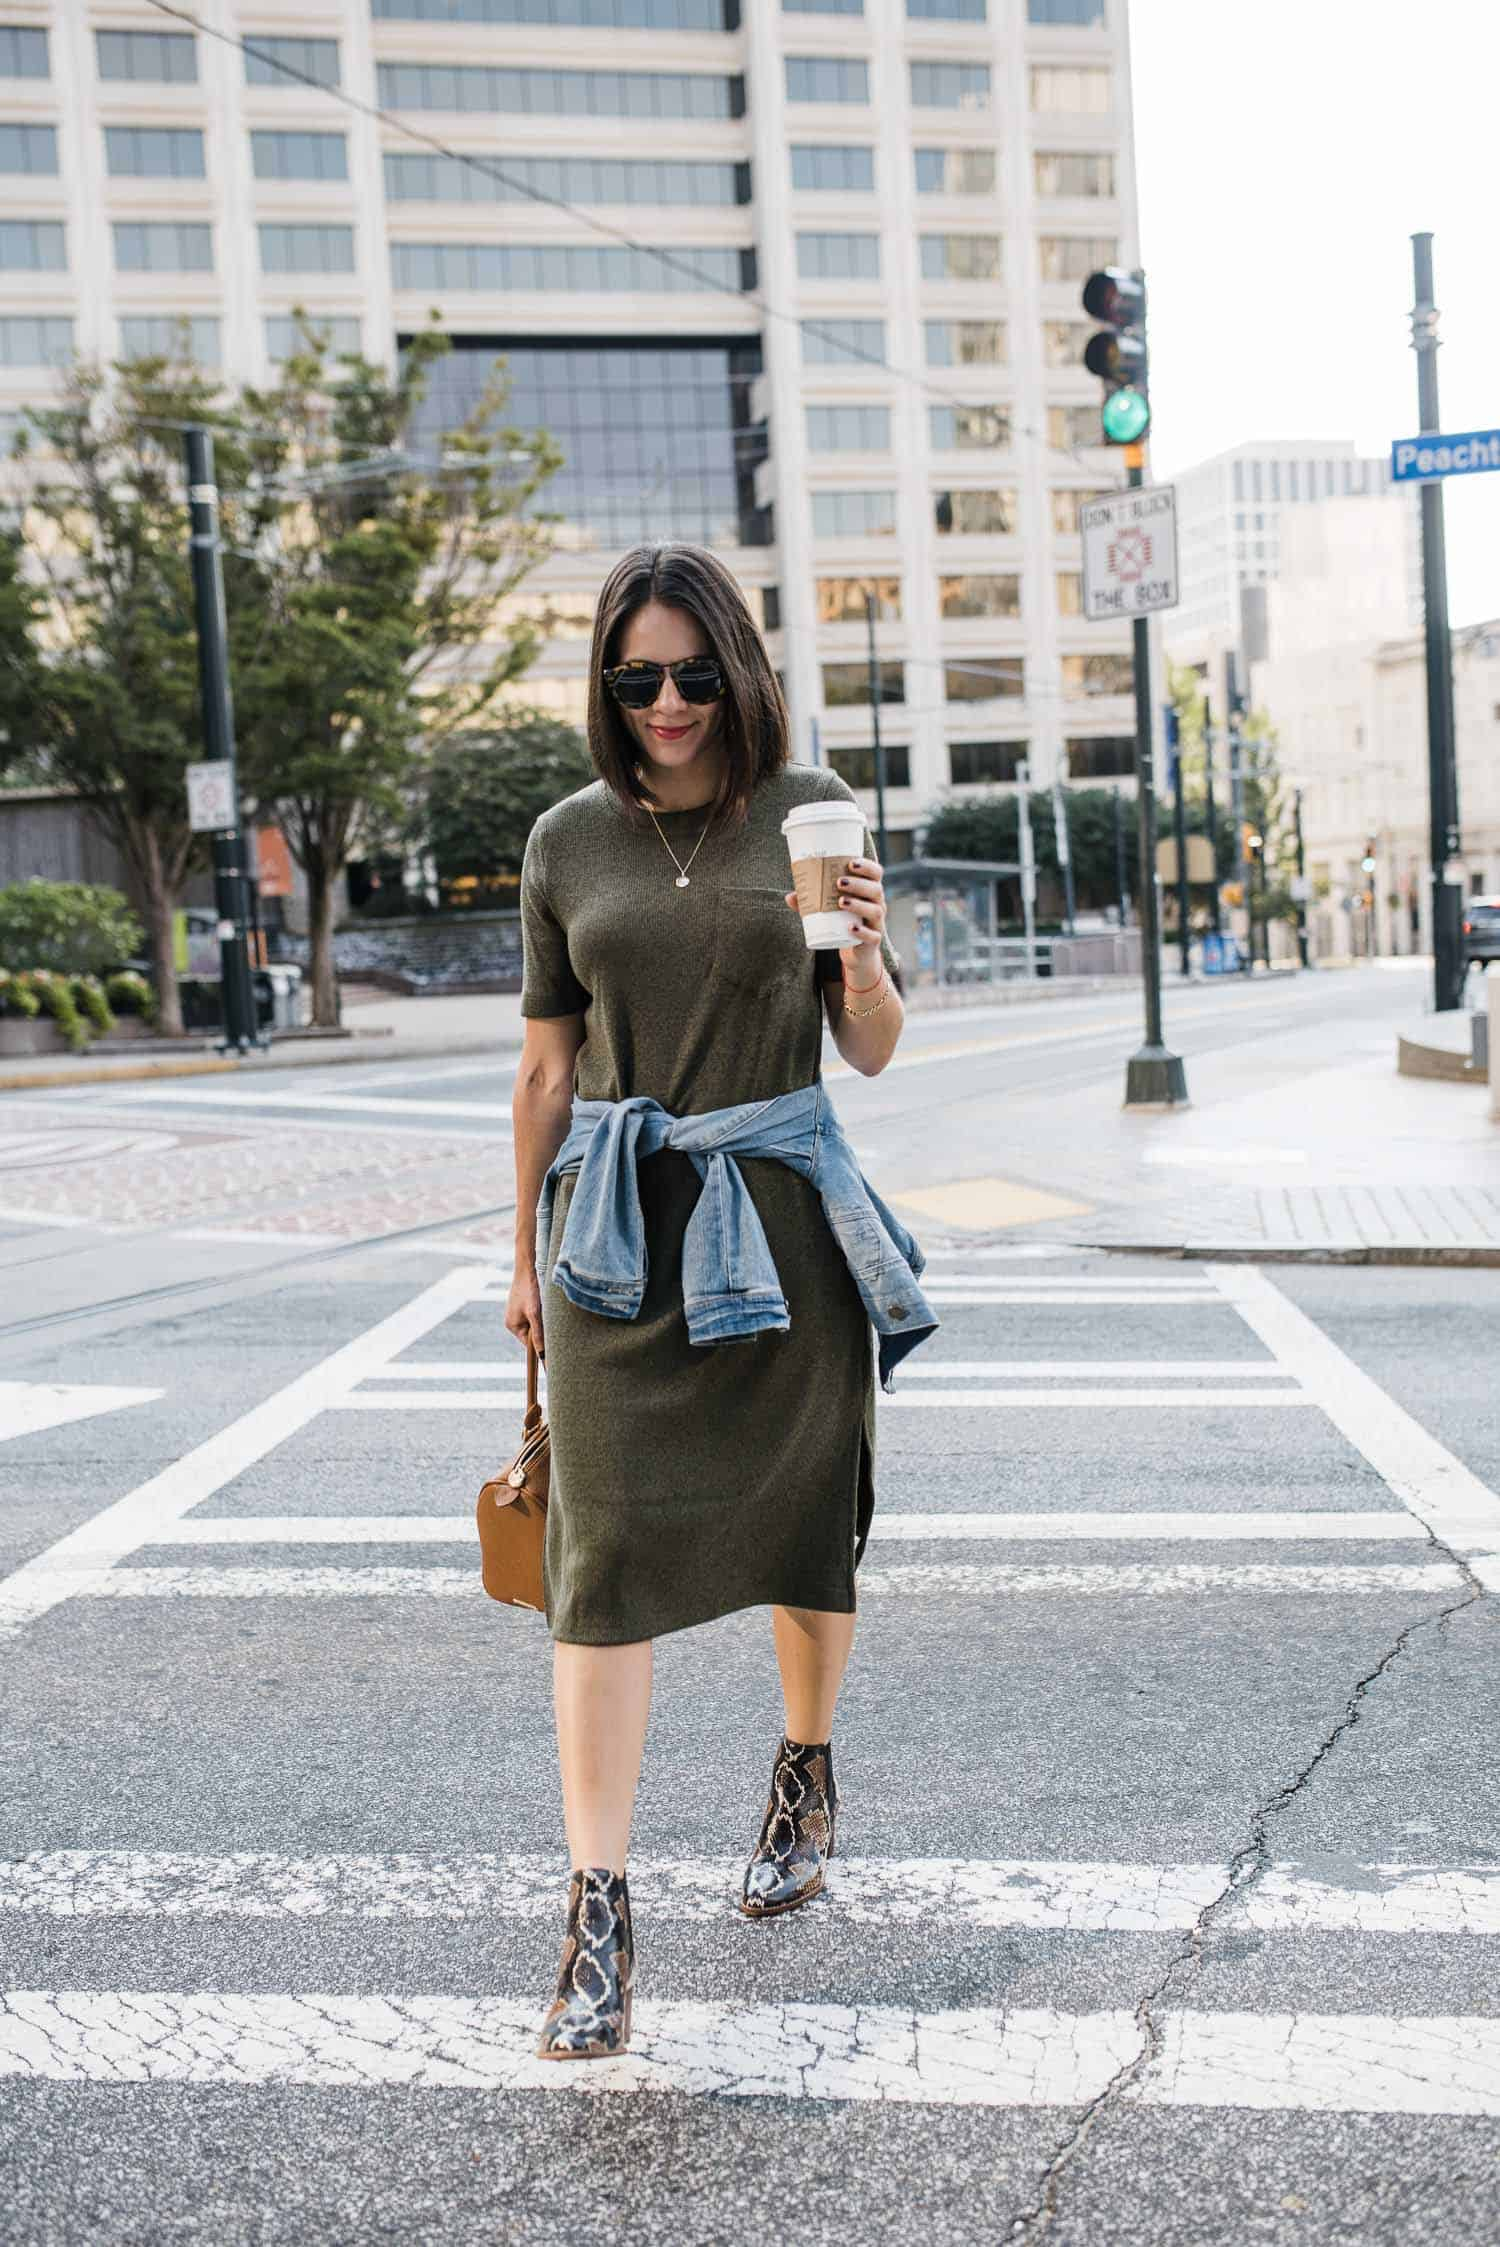 tshirt dress outfit with denim jacket